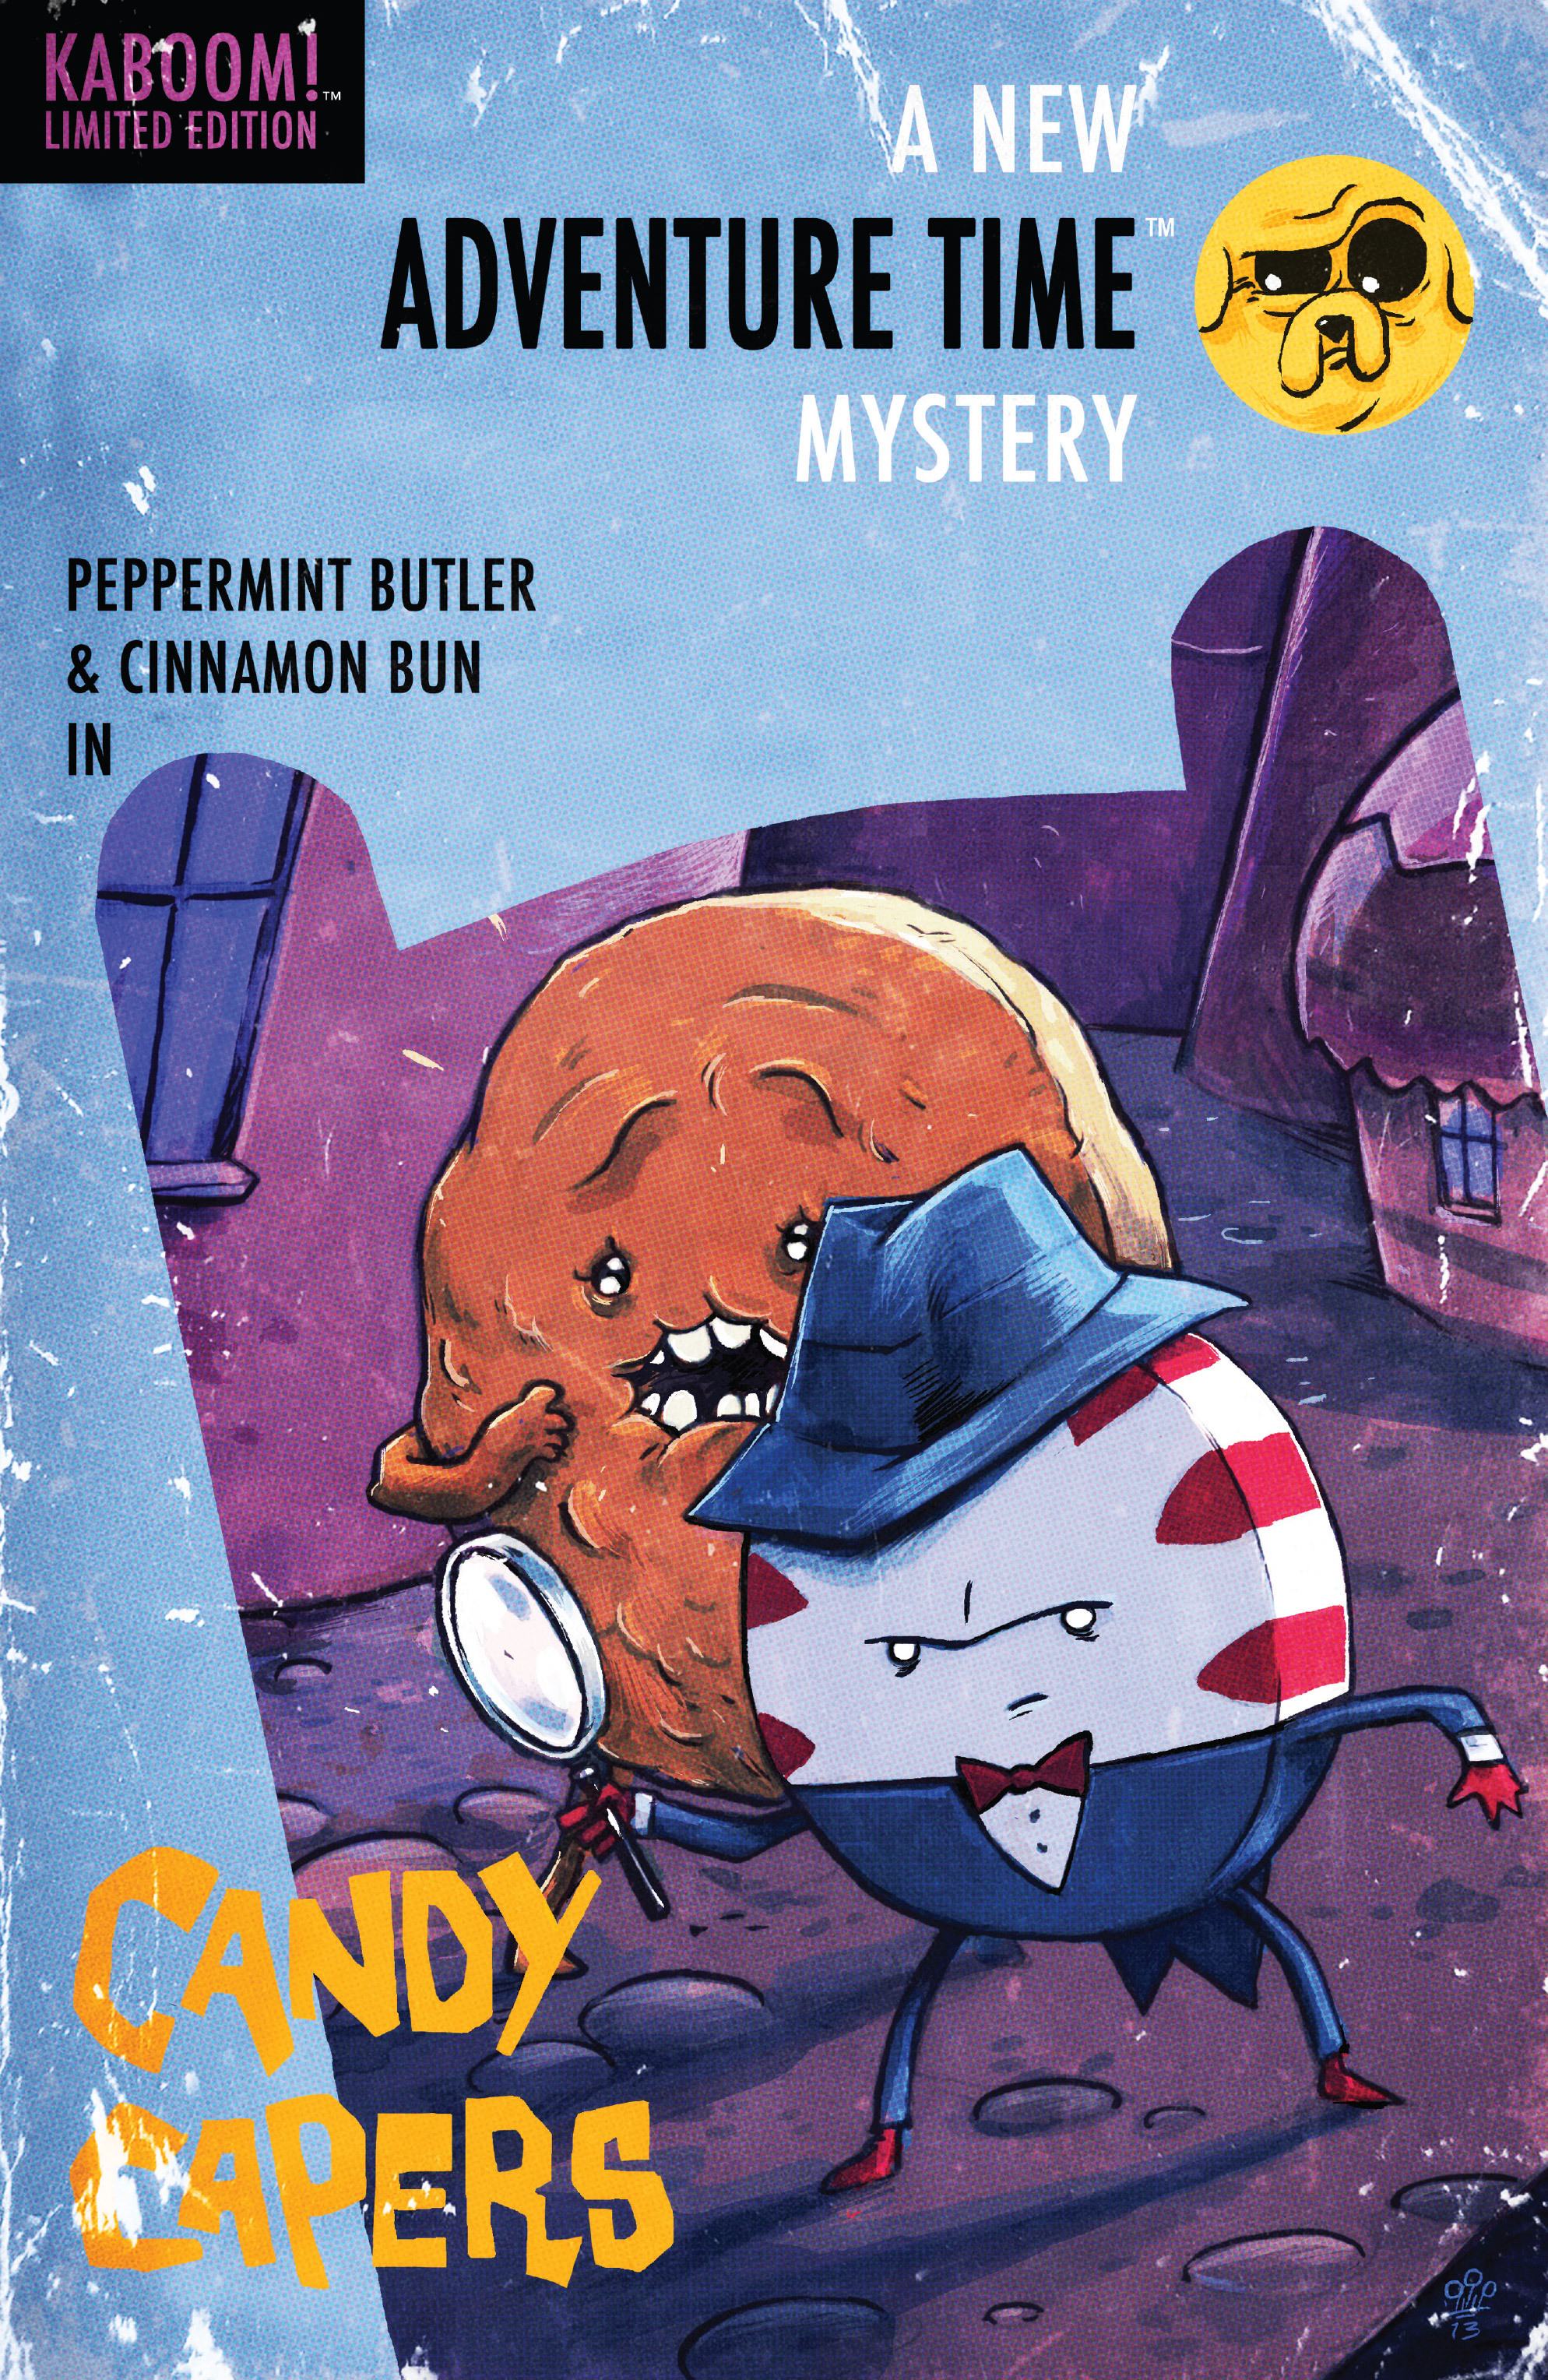 Read online Adventure Time: Candy Capers comic -  Issue #4 - 4